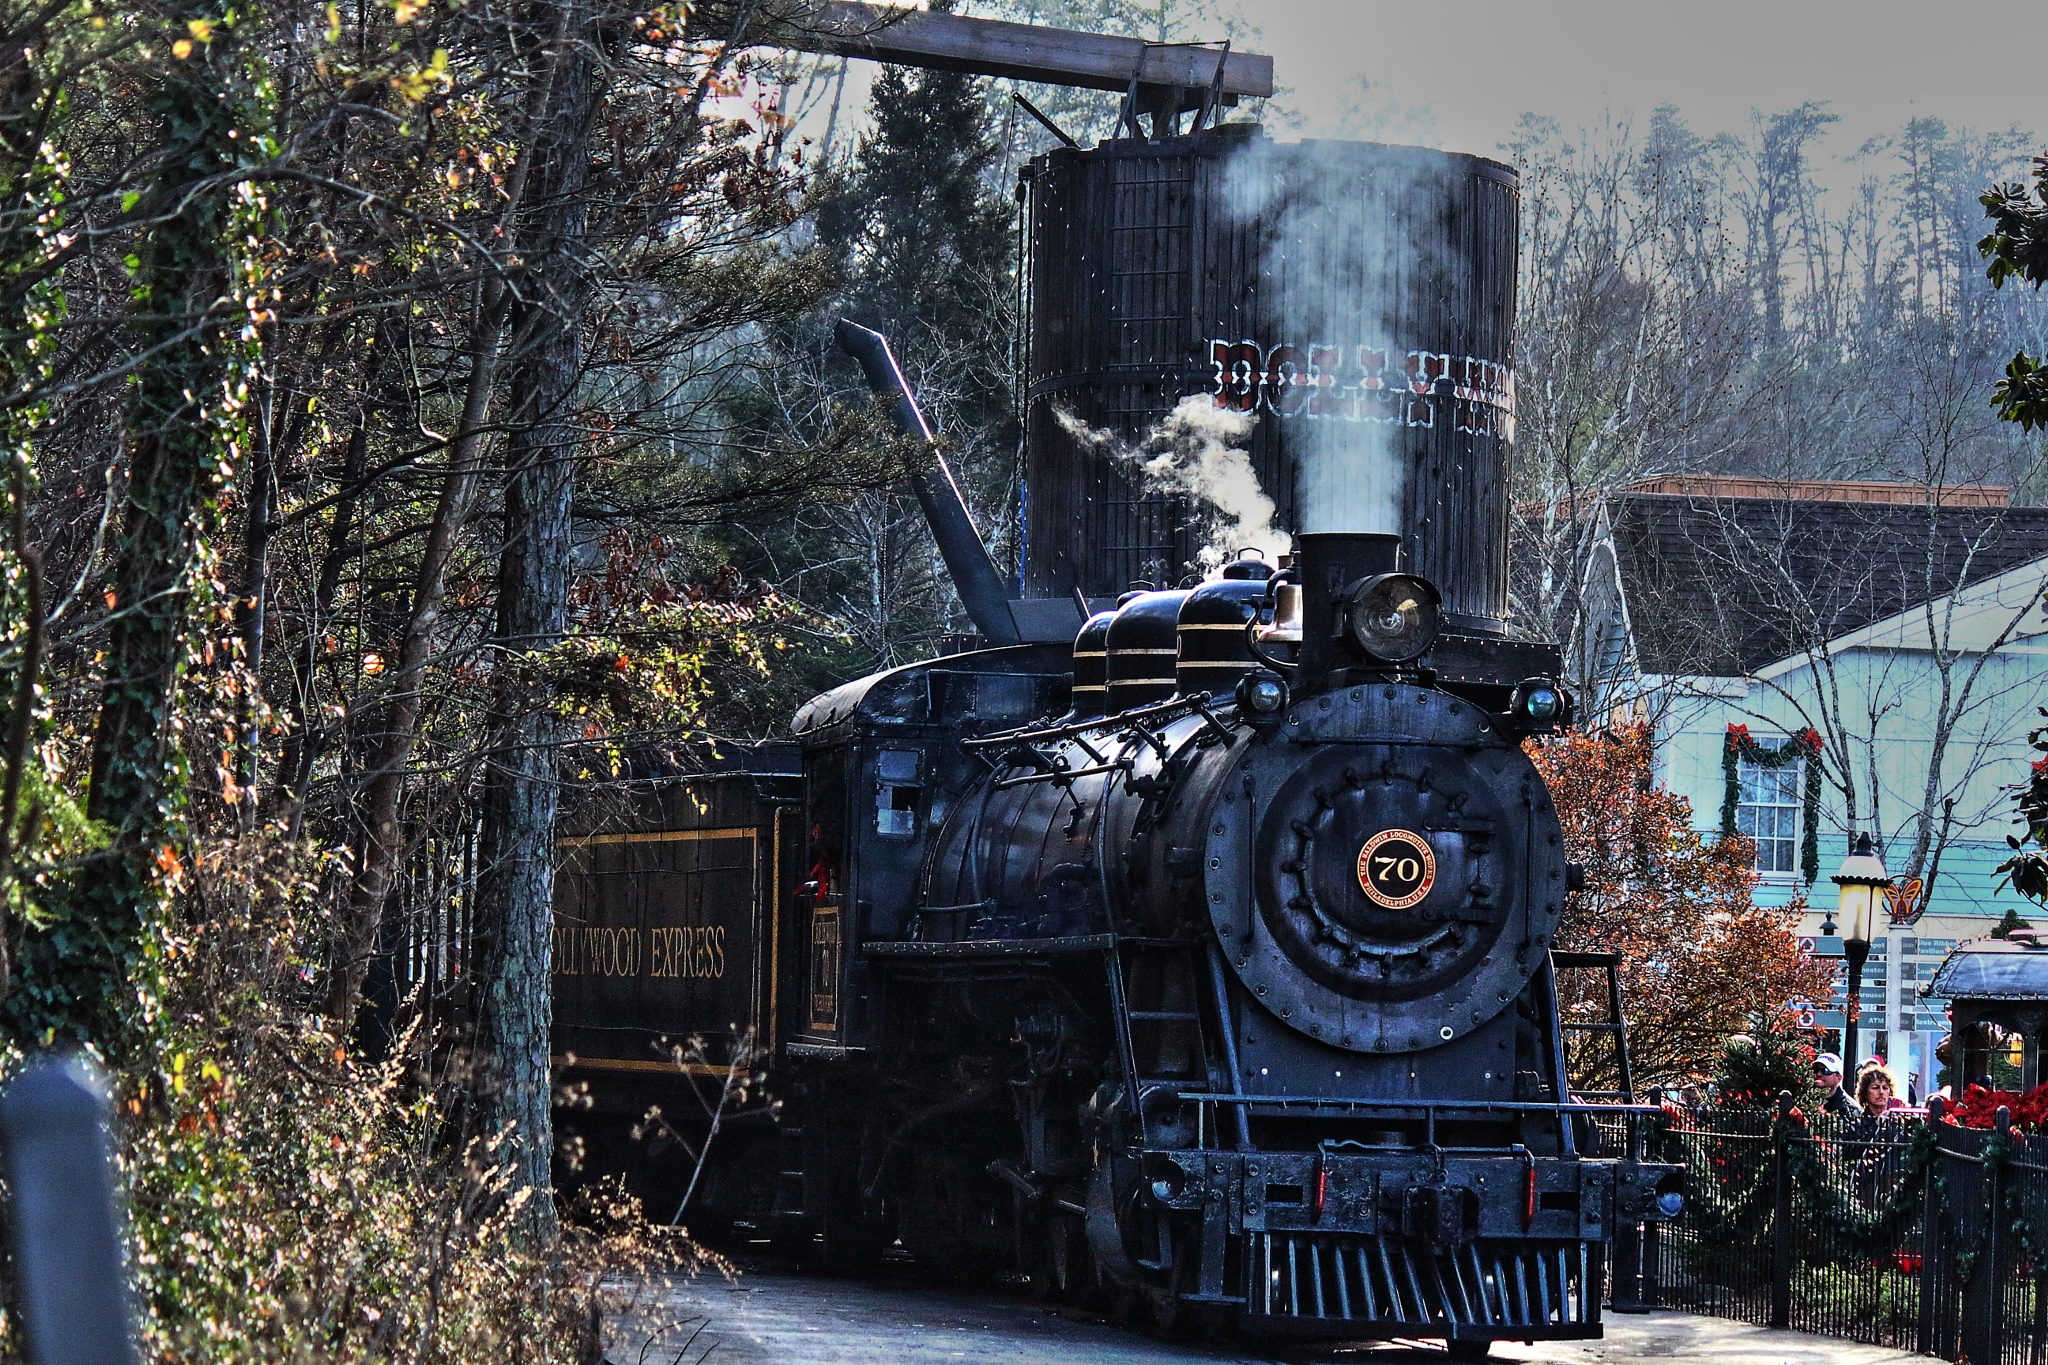 Dollywood coal train by Clark L. Roberts